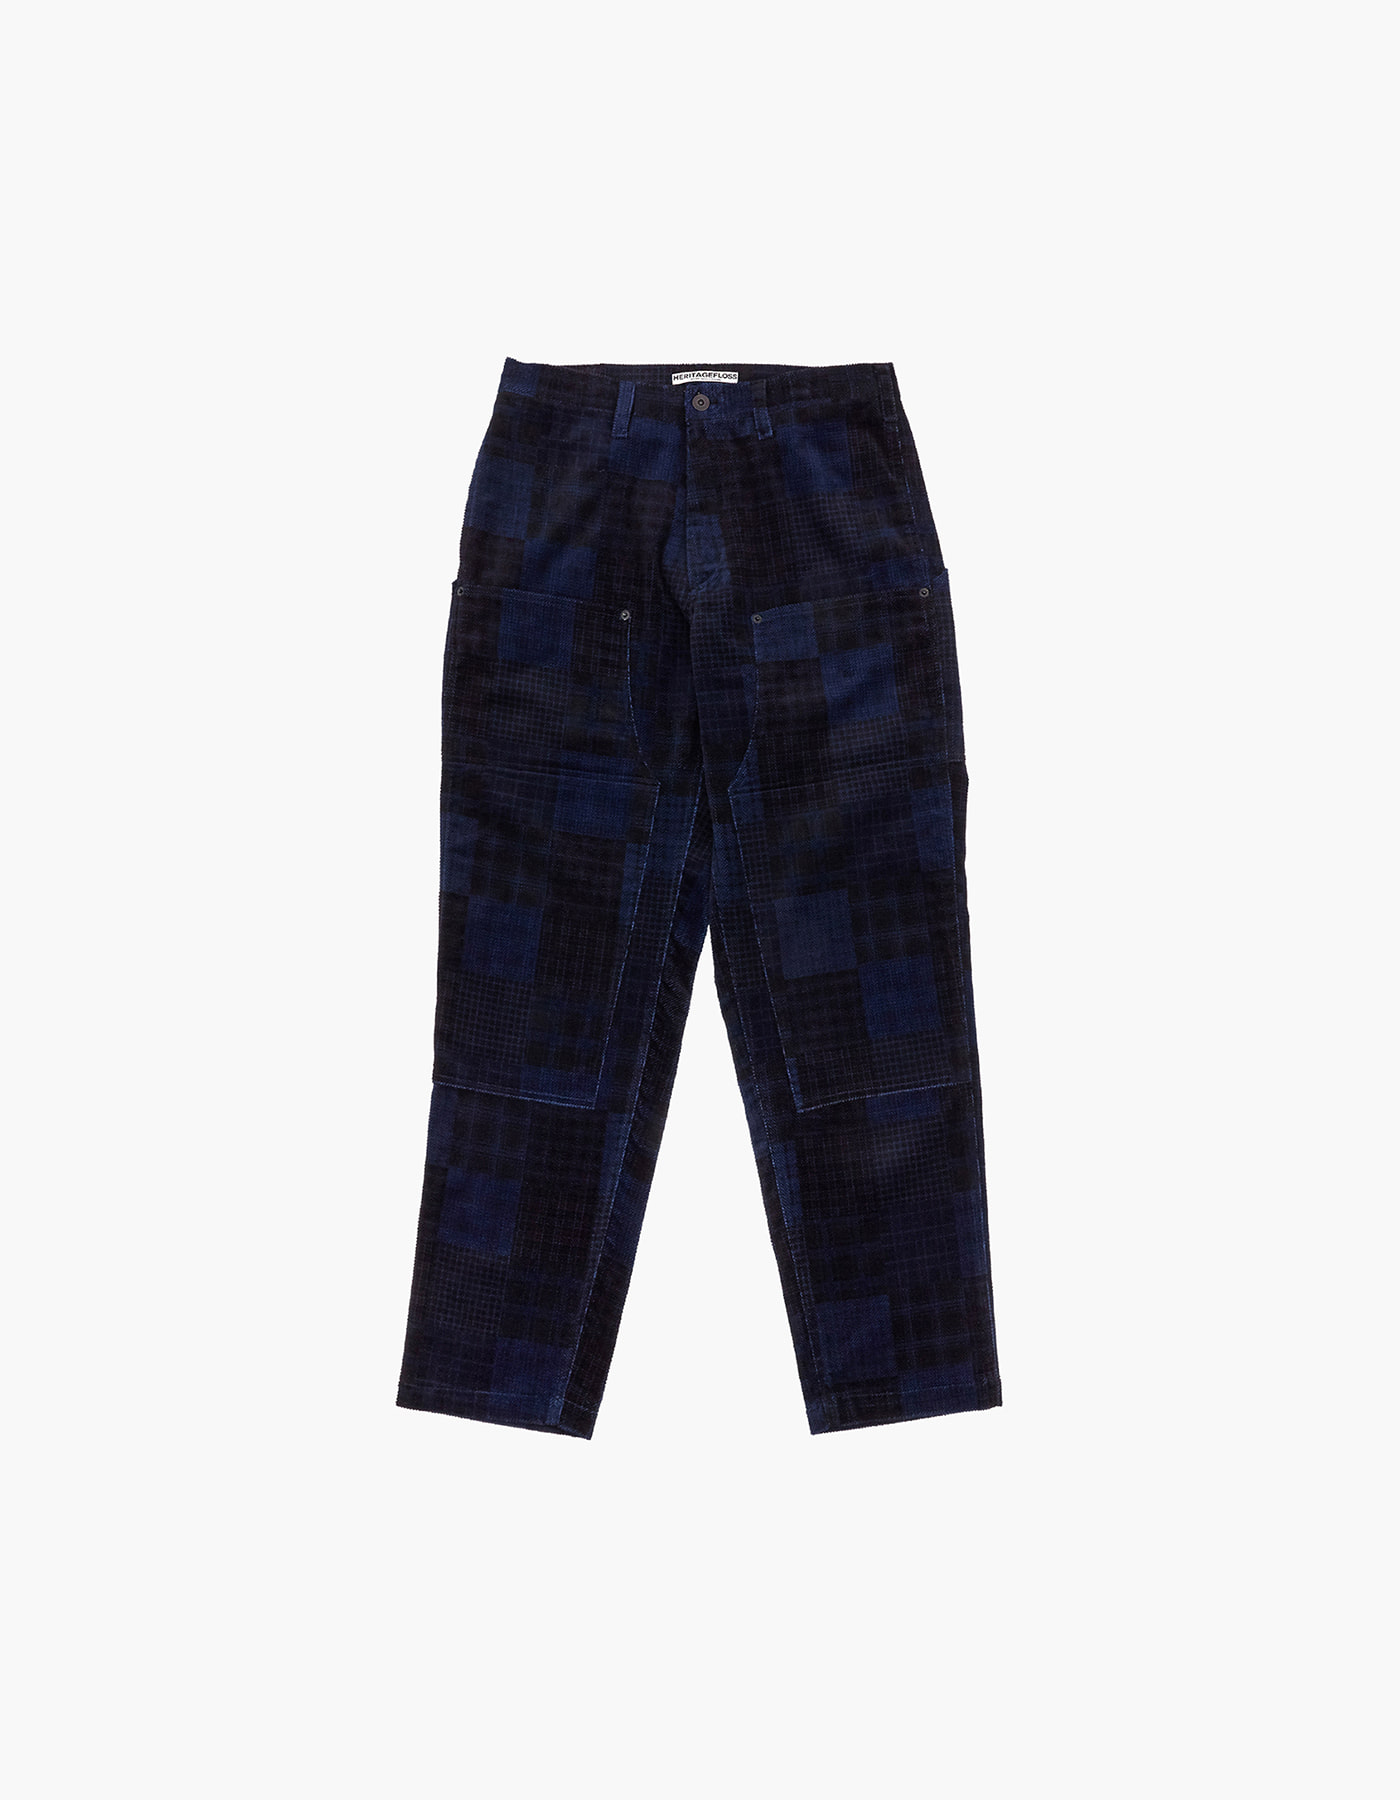 CORDUROY WORK PANTS / BLUE